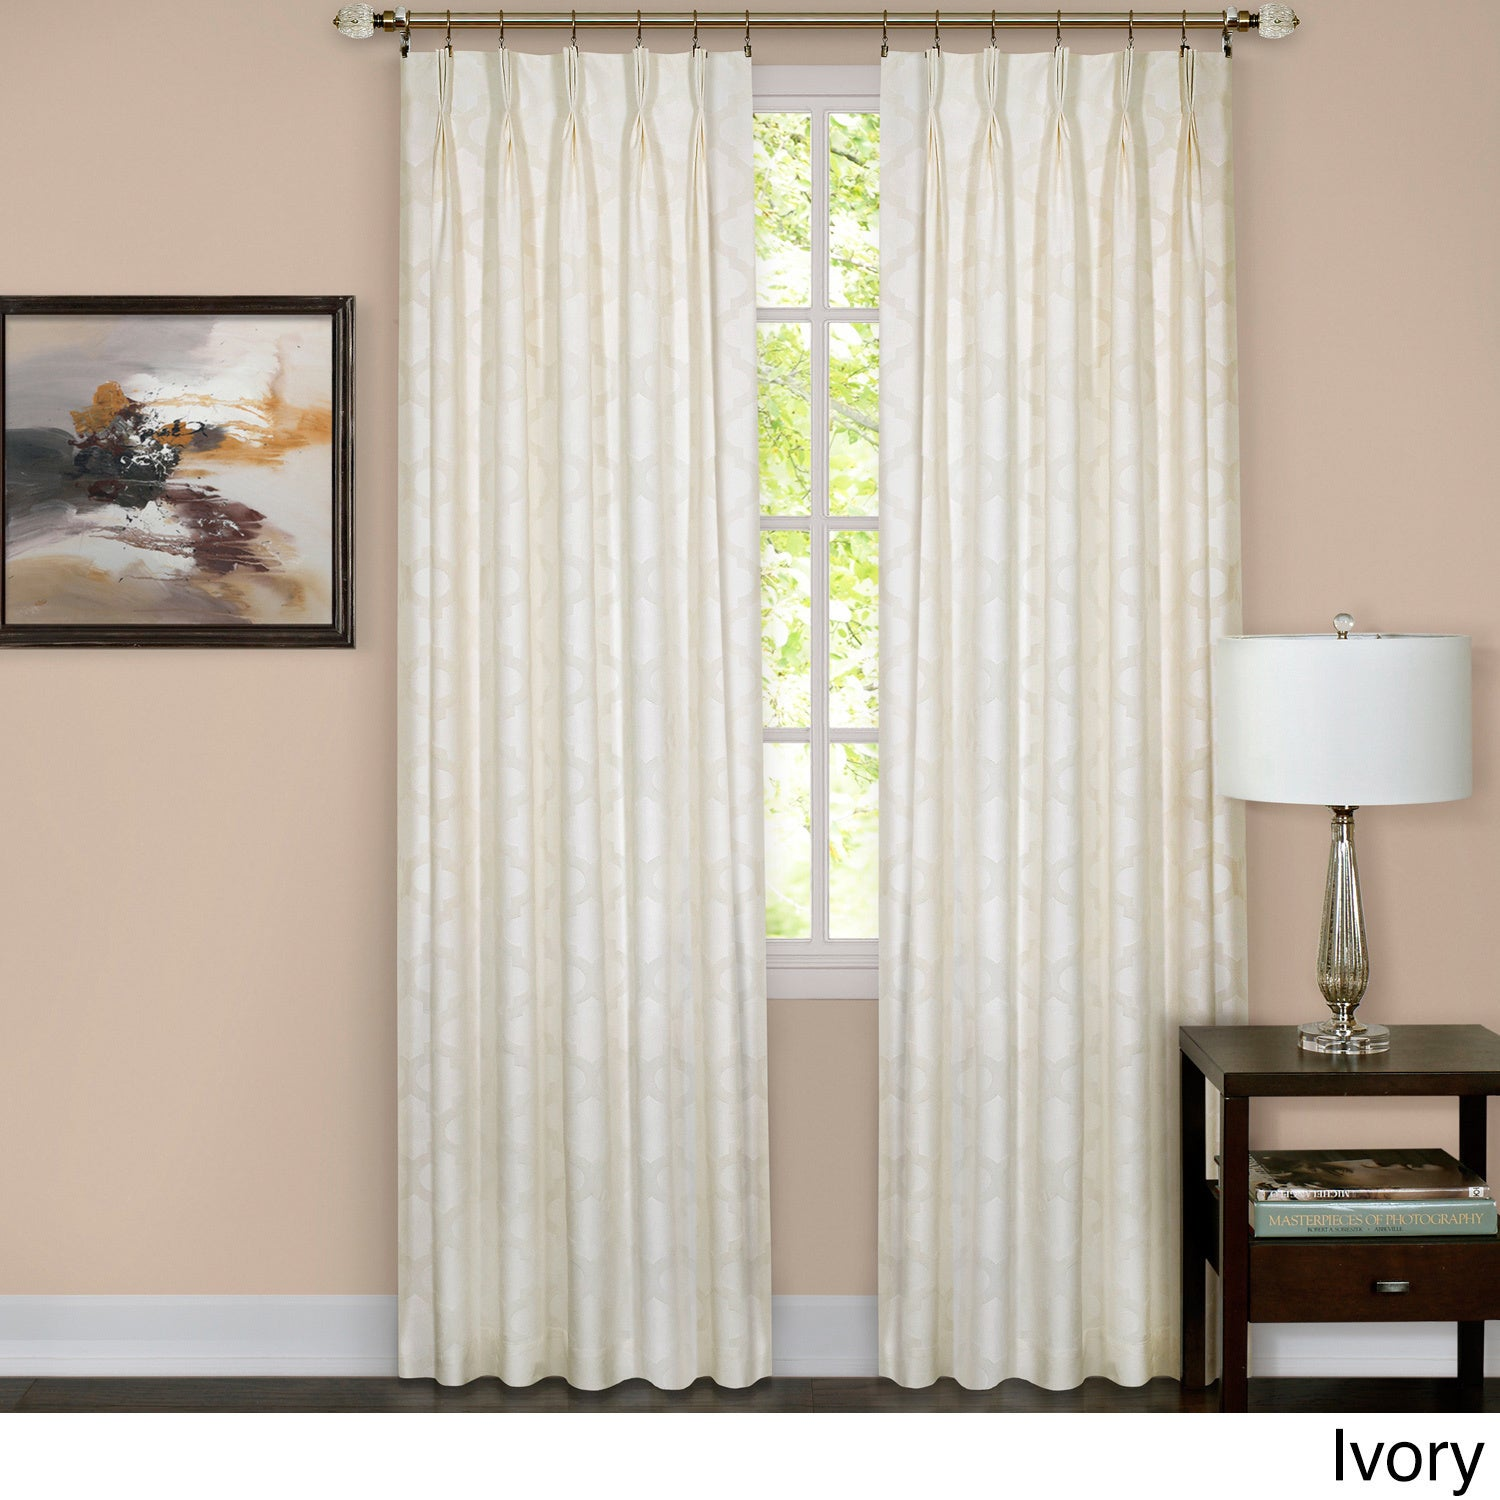 sheers single traverse ready canada ideas double made for awesome voiles drapes of hand finished curtain curtains pleat rod pinch by new featuring rods sheer pleated